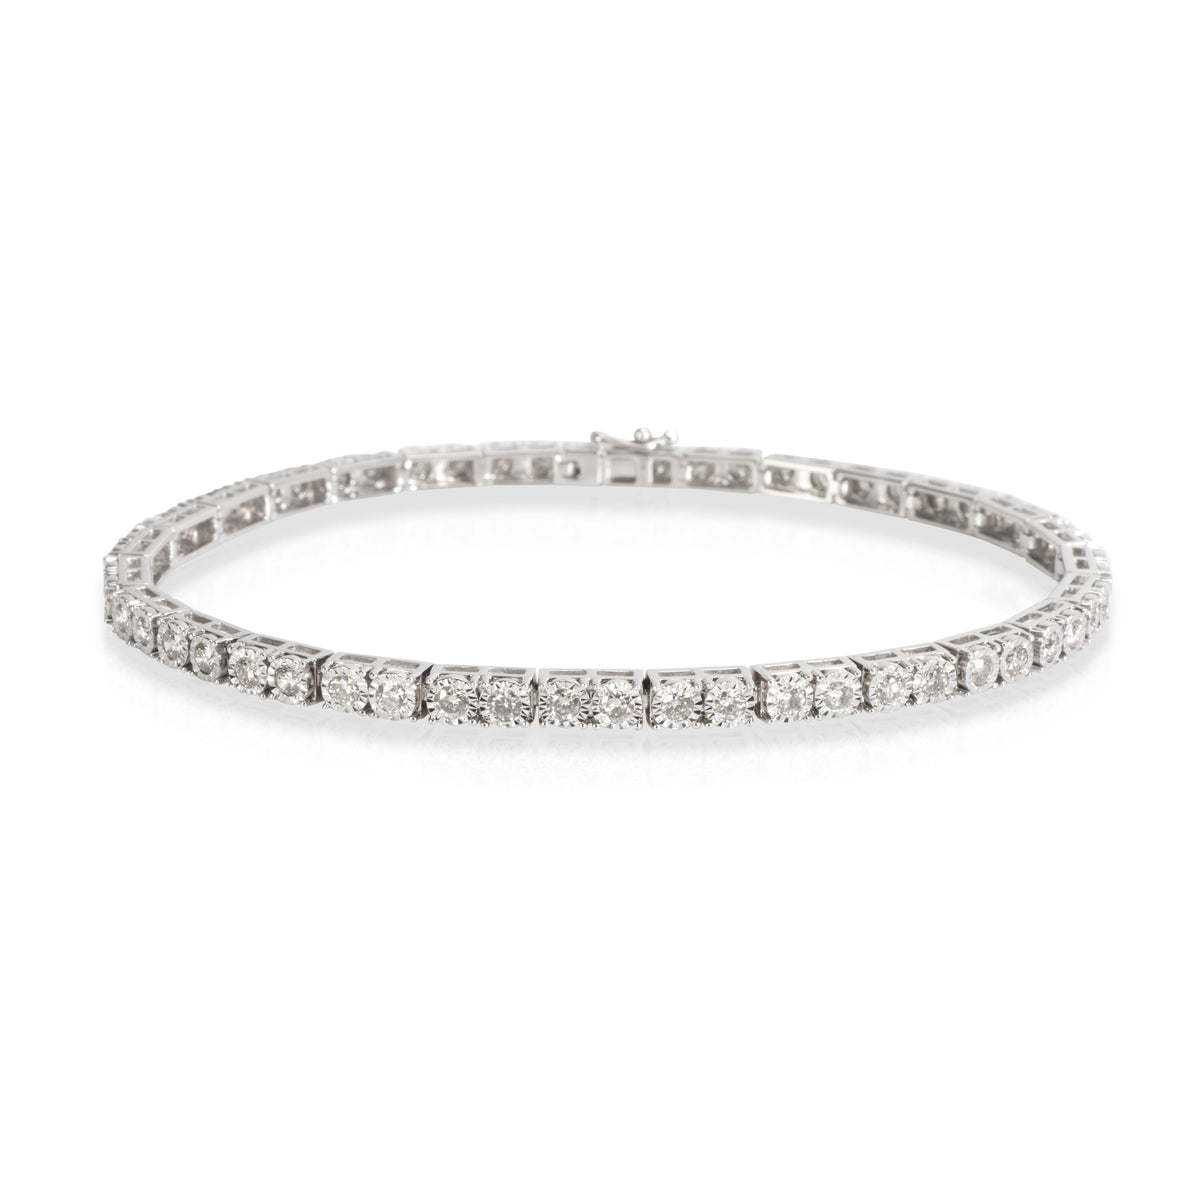 Miracle Set Diamond Tennis Bracelet in 10KT White Gold 1.71 CTW